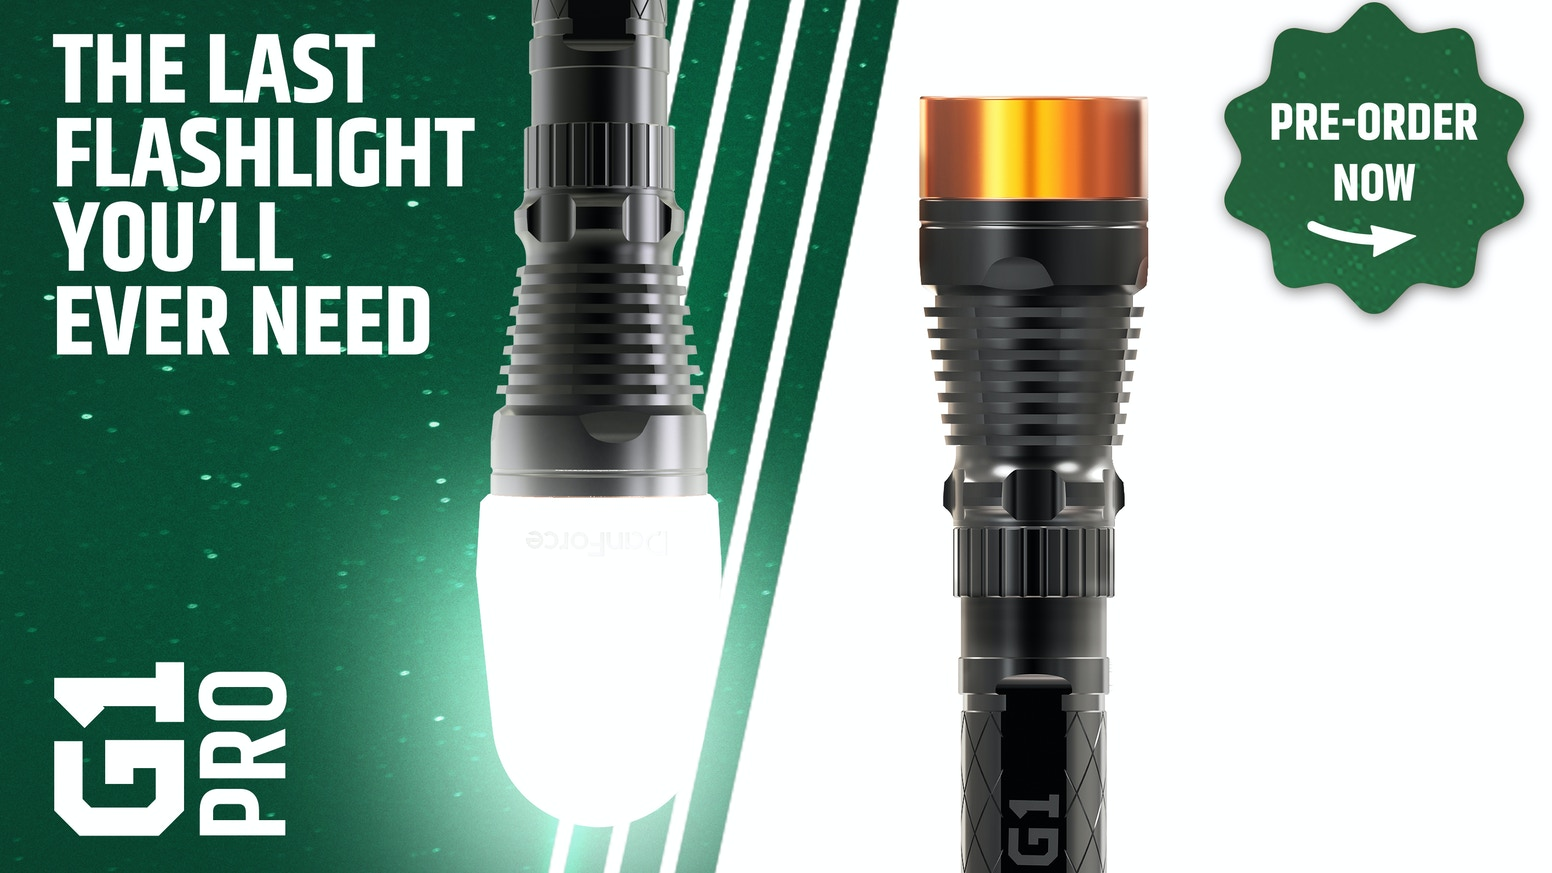 The world's first modular flashlight that adapts to any lighting situation.